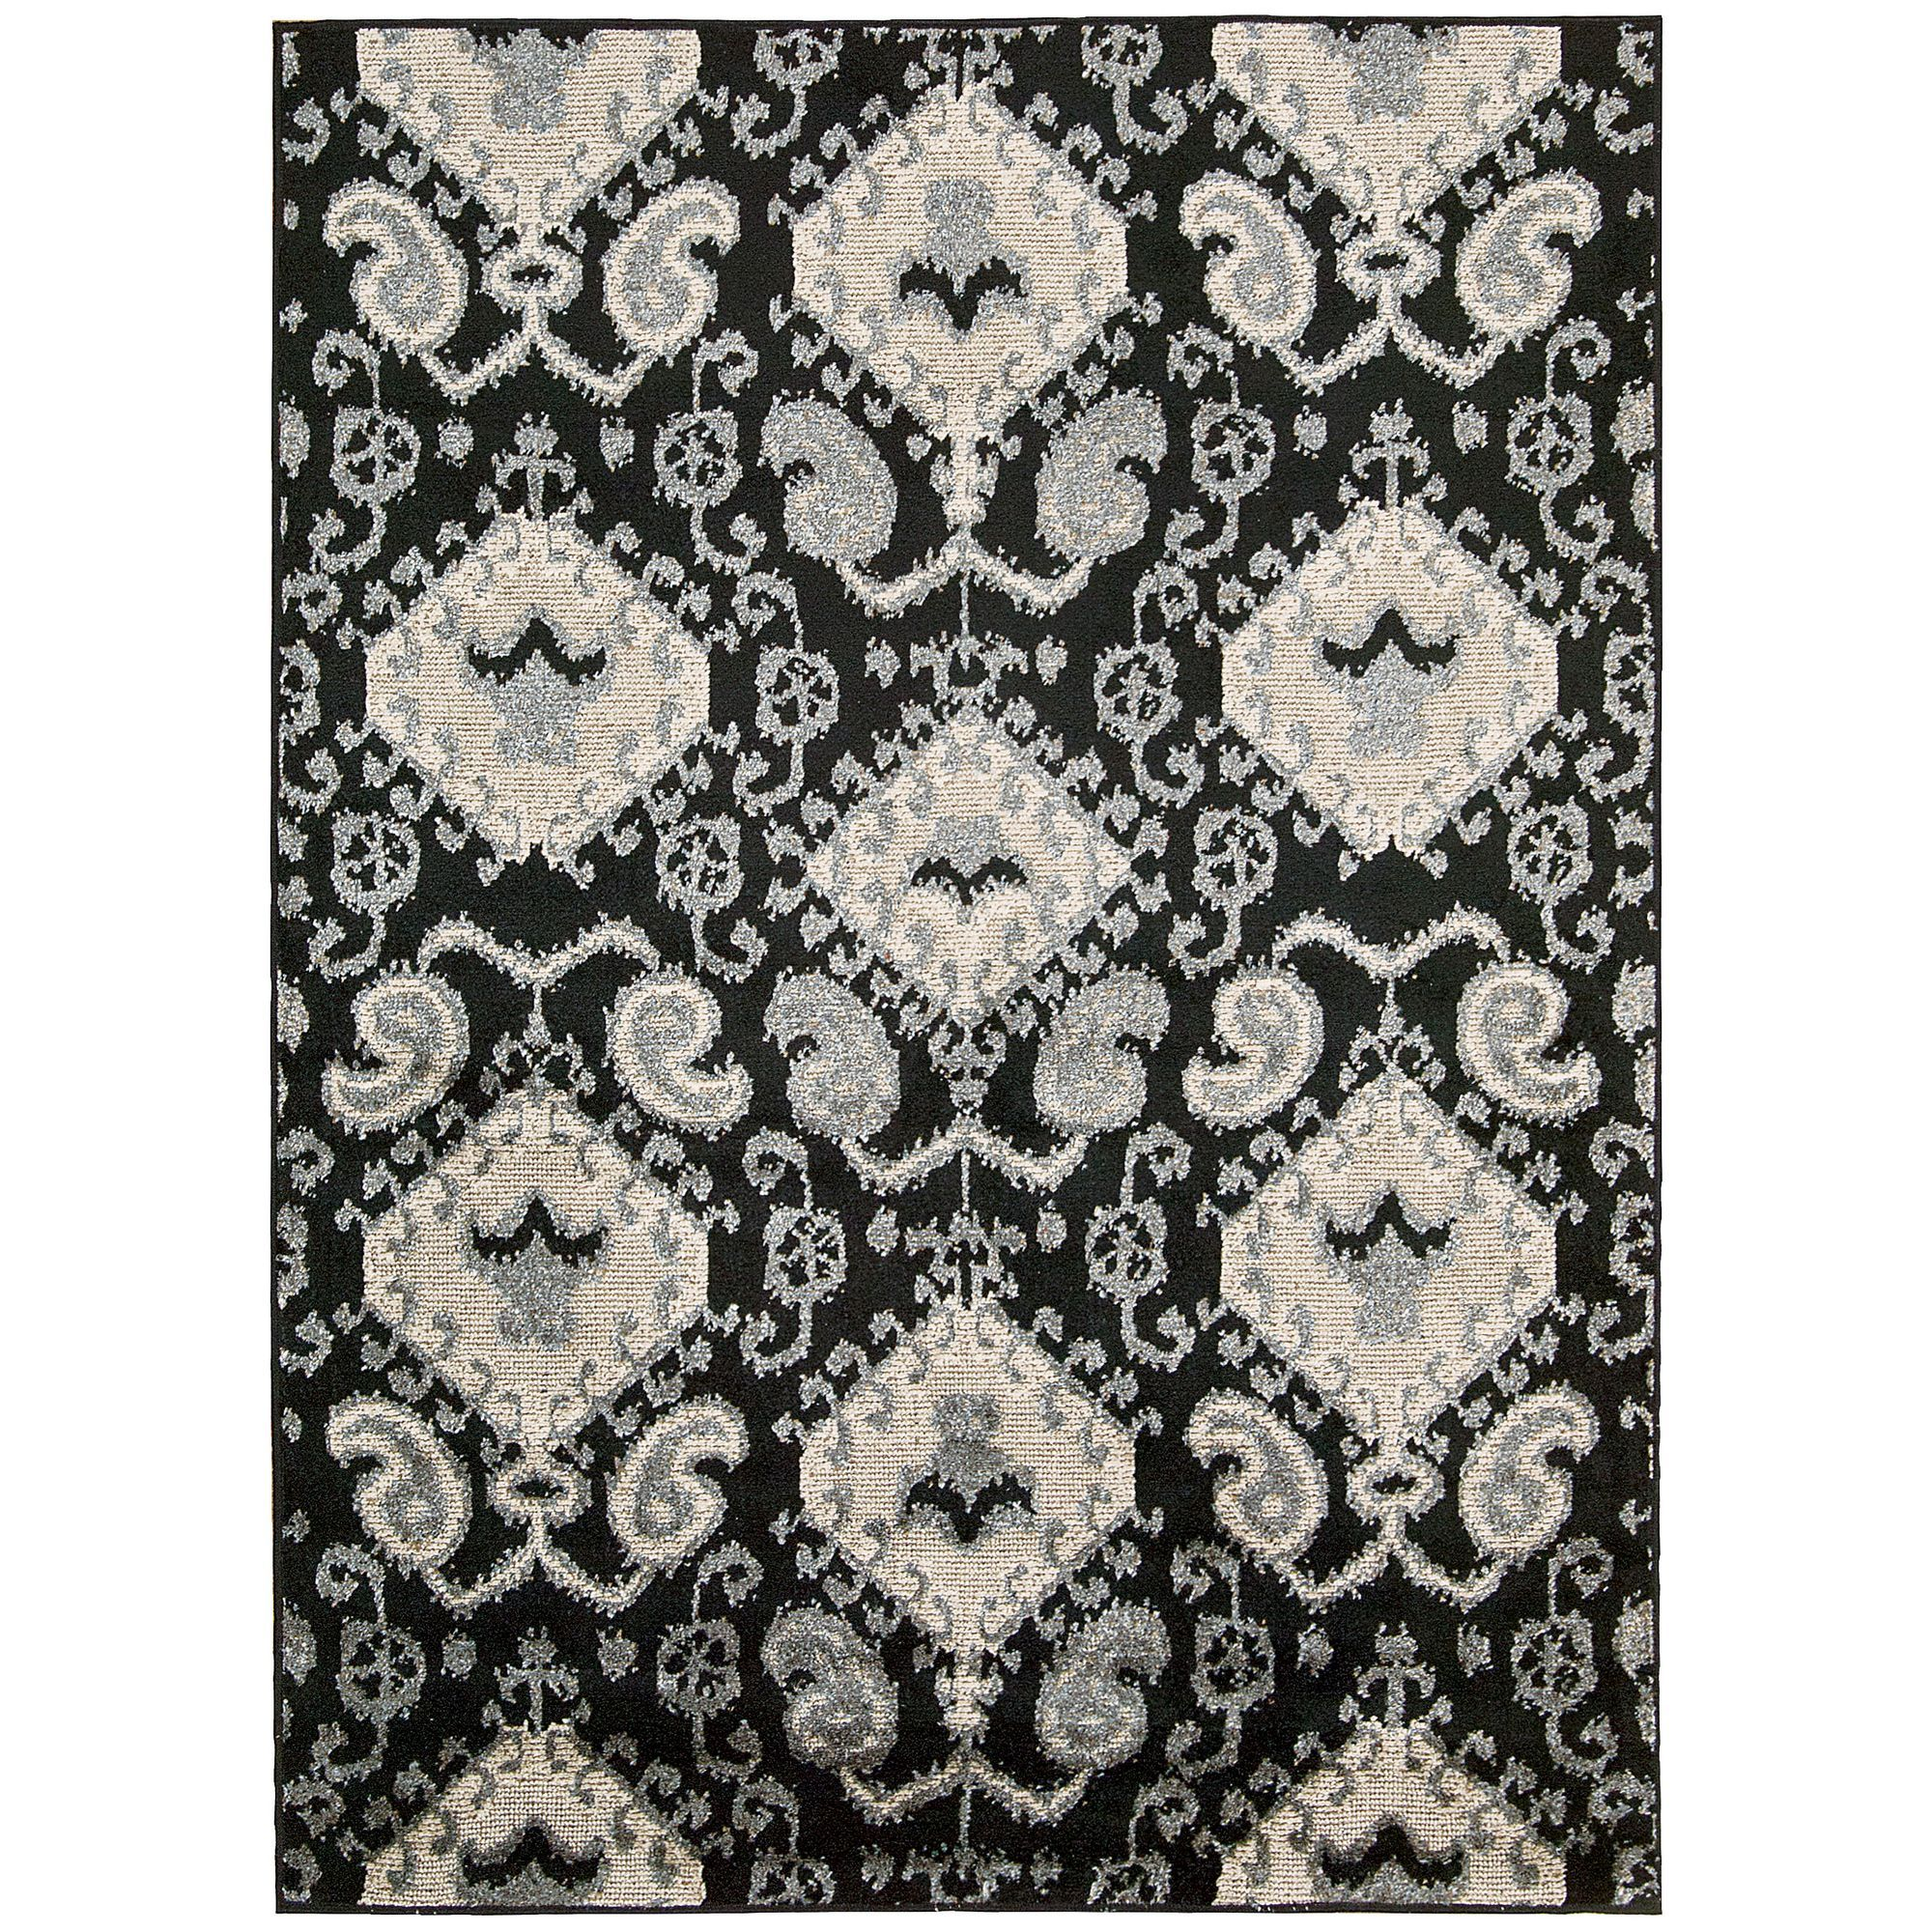 kindred ikat print black area rug (' x ') by nourison  ikat  - kindred ikat print black area rug (' x ') by nourison